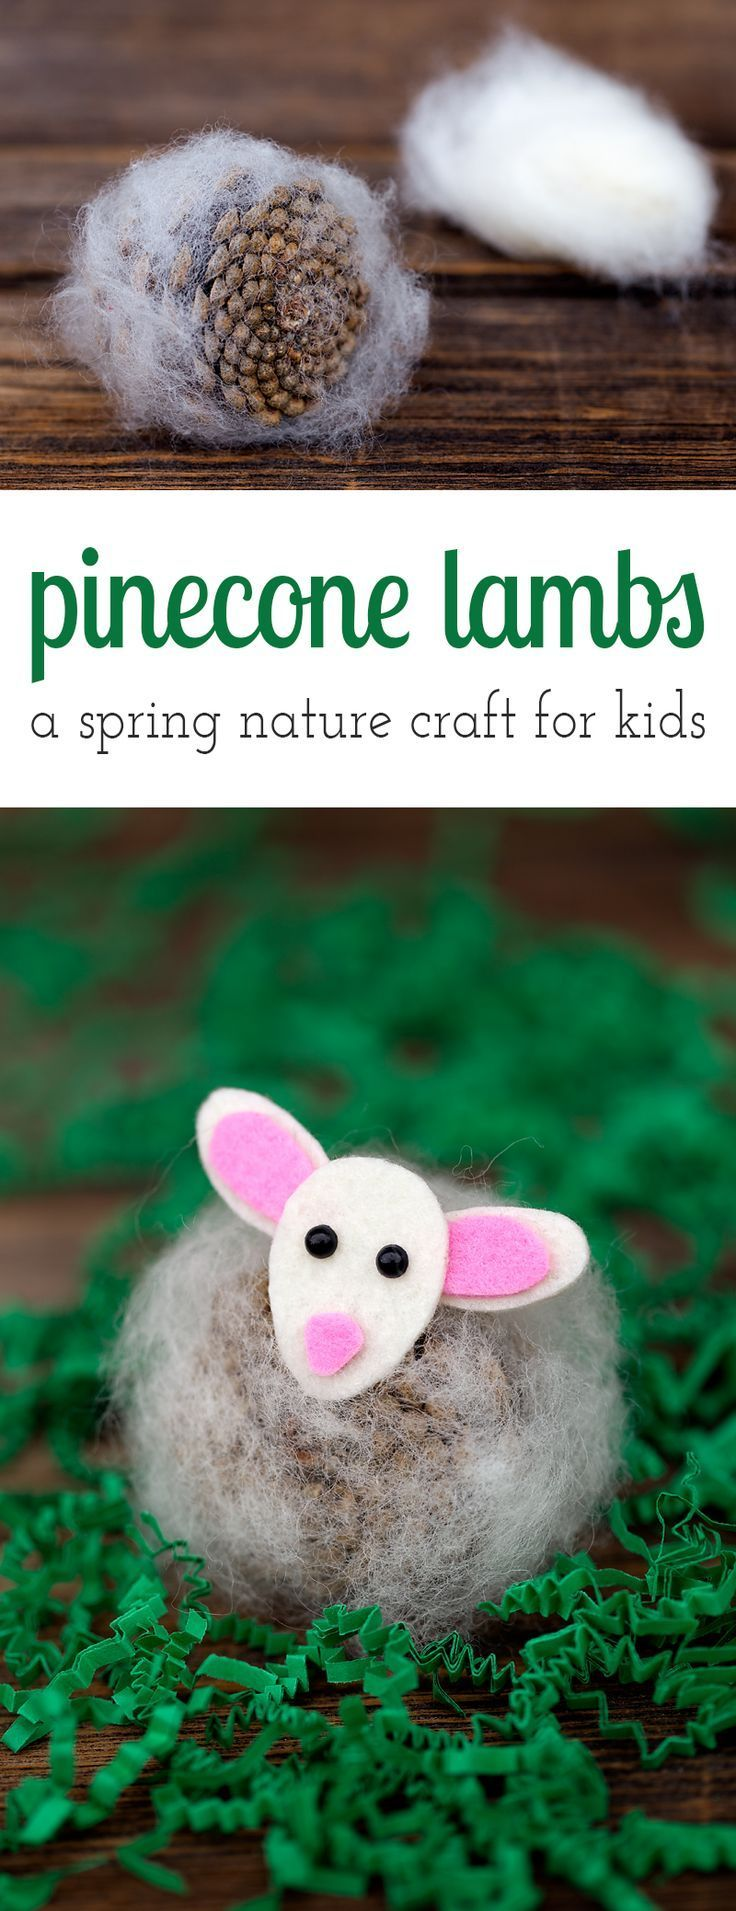 Pinecone Lambs are a creative, easy, and fun spring nature craft for kids. Made with pinecones, wool, felt, and kid-friendly craft supplies! via /https/://www.pinterest.com/fireflymudpie/